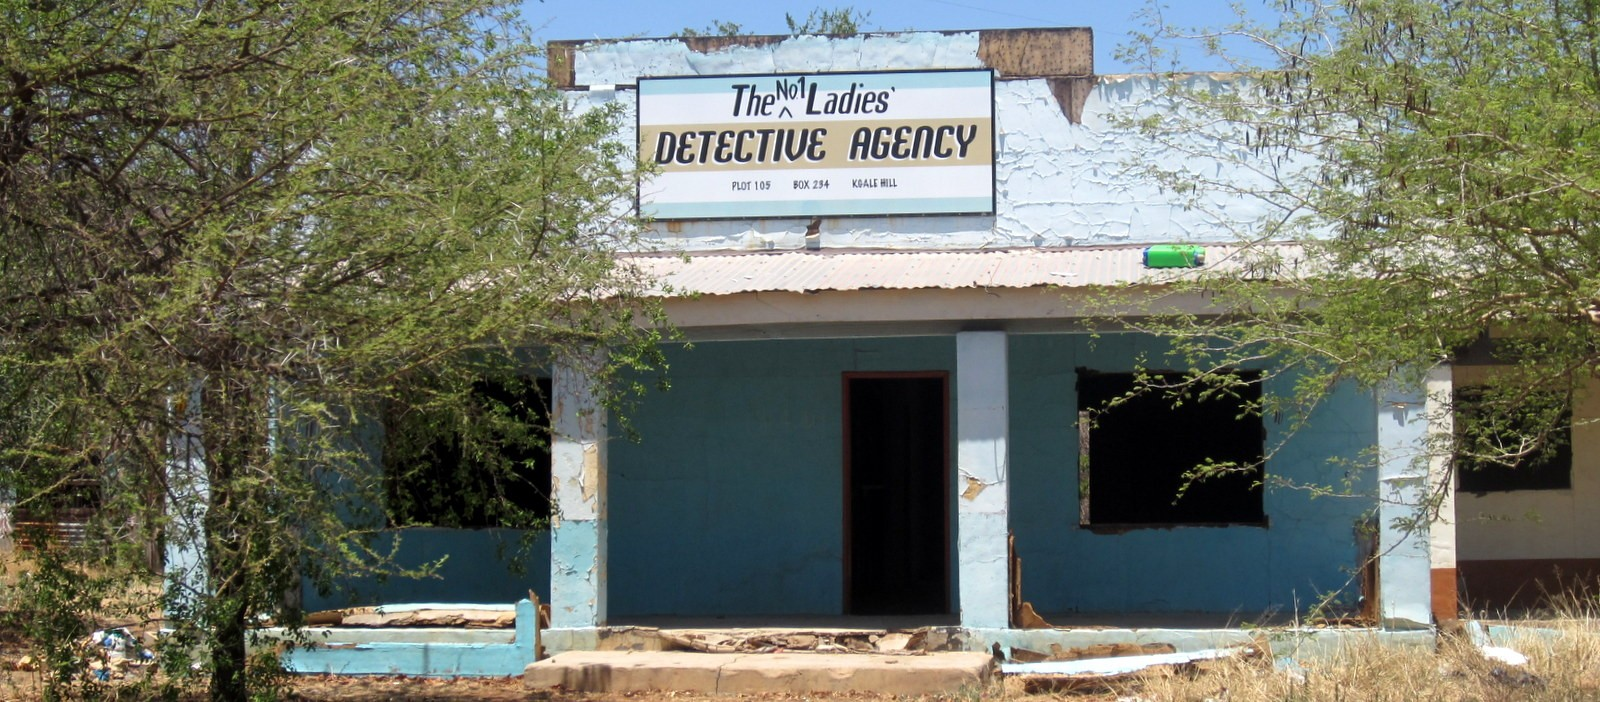 No 1 Ladies Detective Agency Gaborone